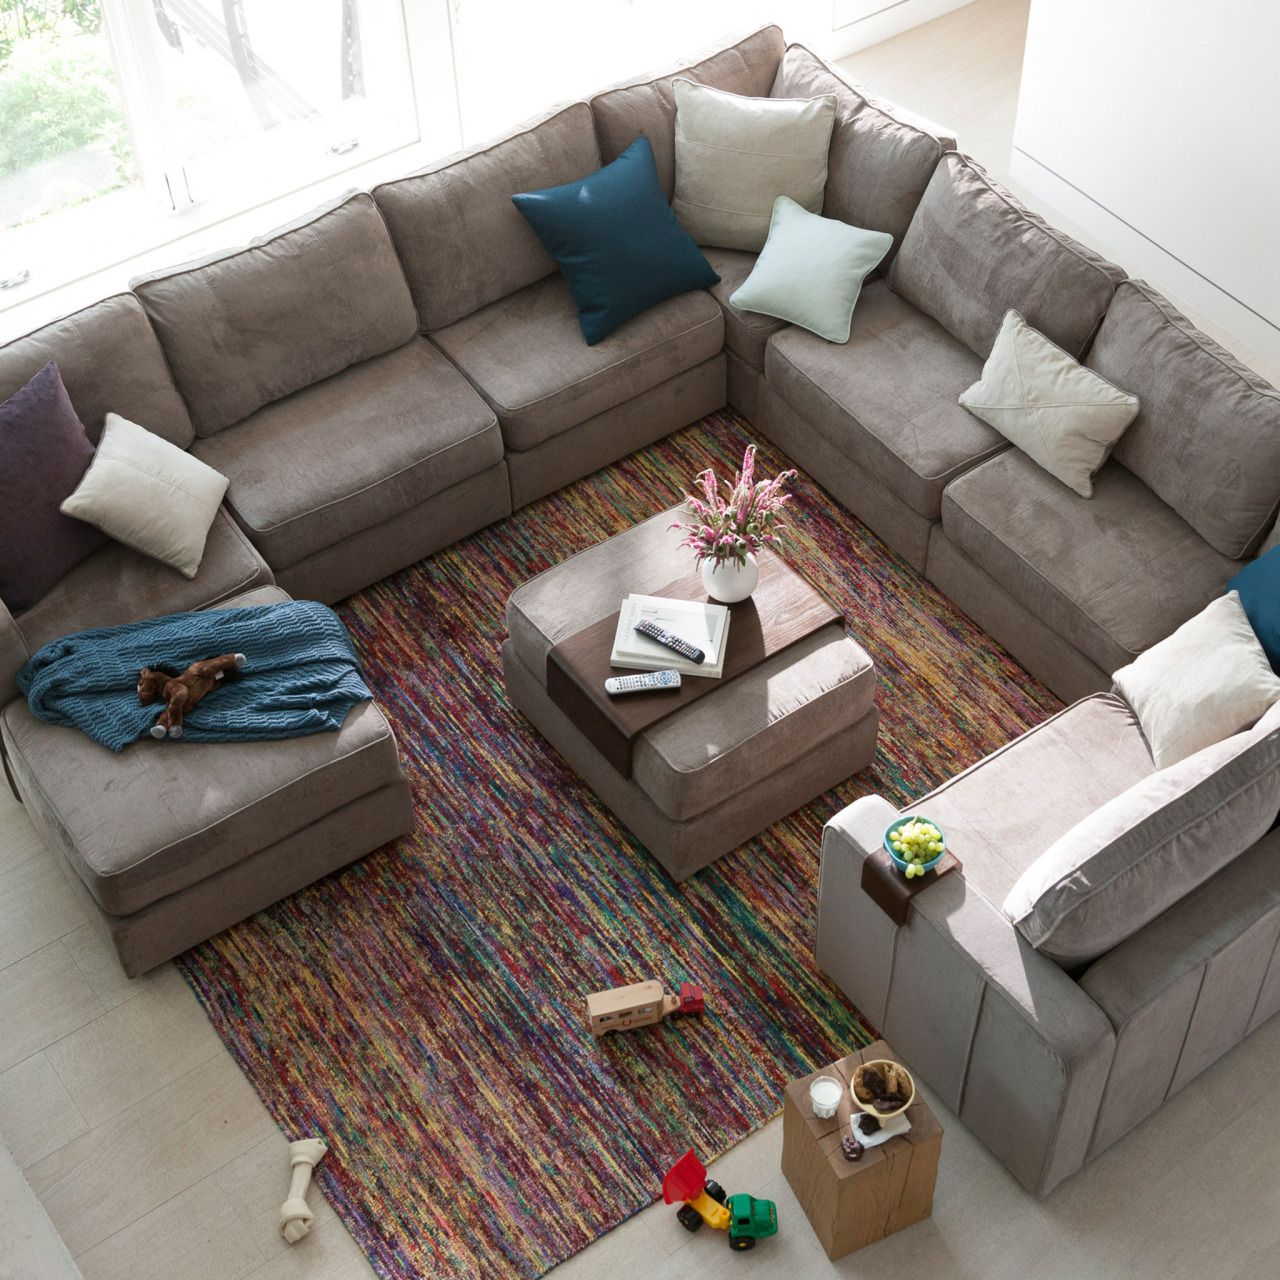 Lovesac We Make Sactionals The Most Adaptable Couch In The